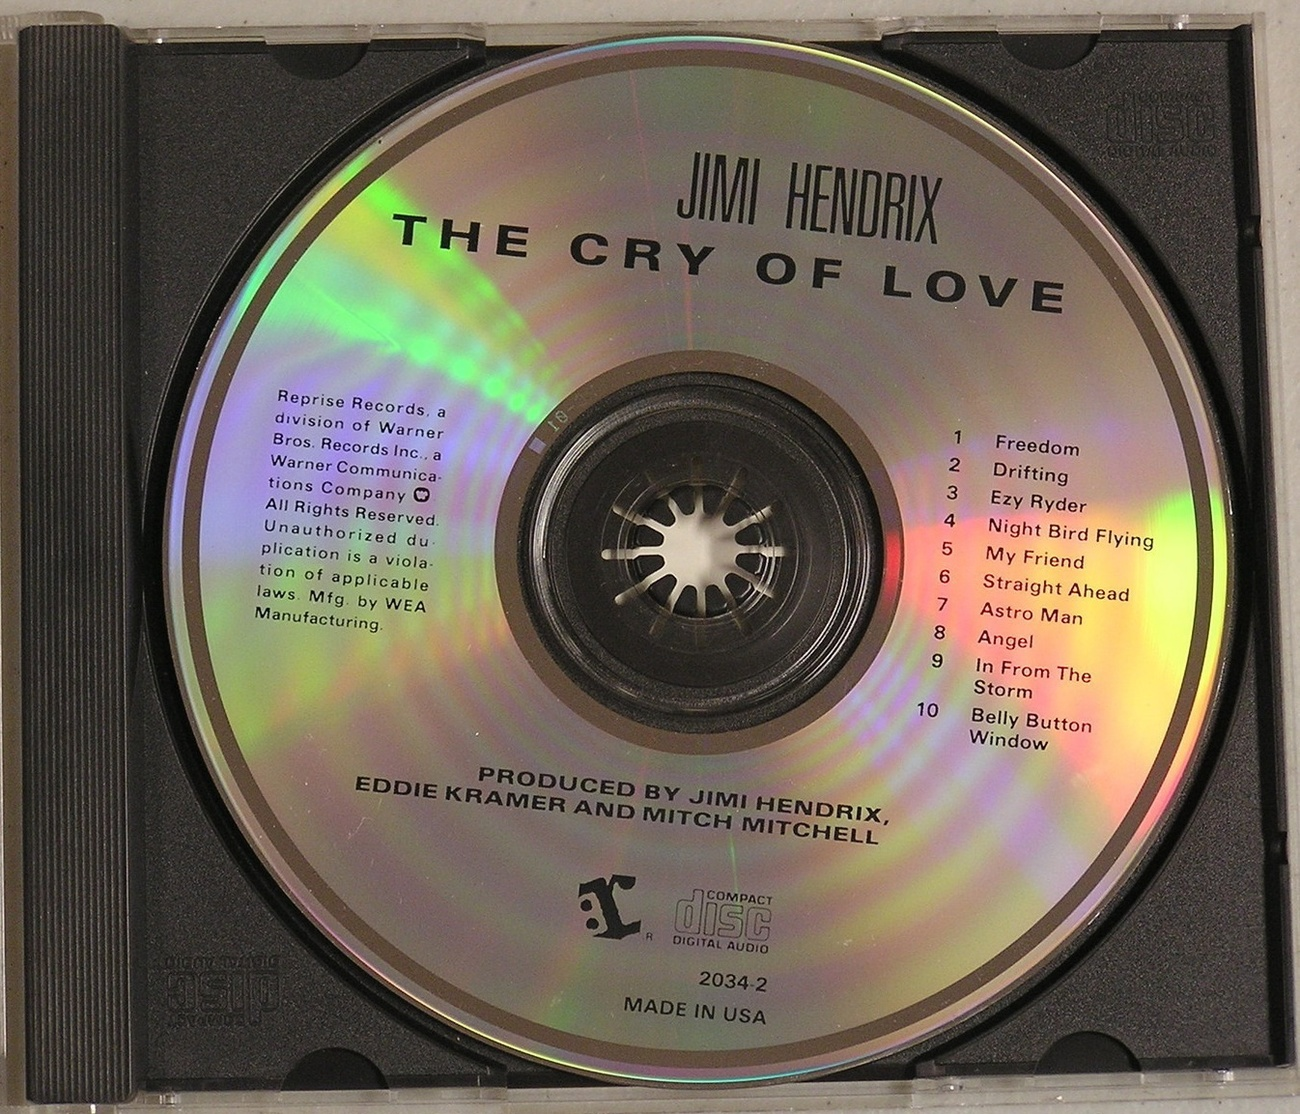 jimi hendrix the cry of love cd 1970 reprise records cds. Black Bedroom Furniture Sets. Home Design Ideas